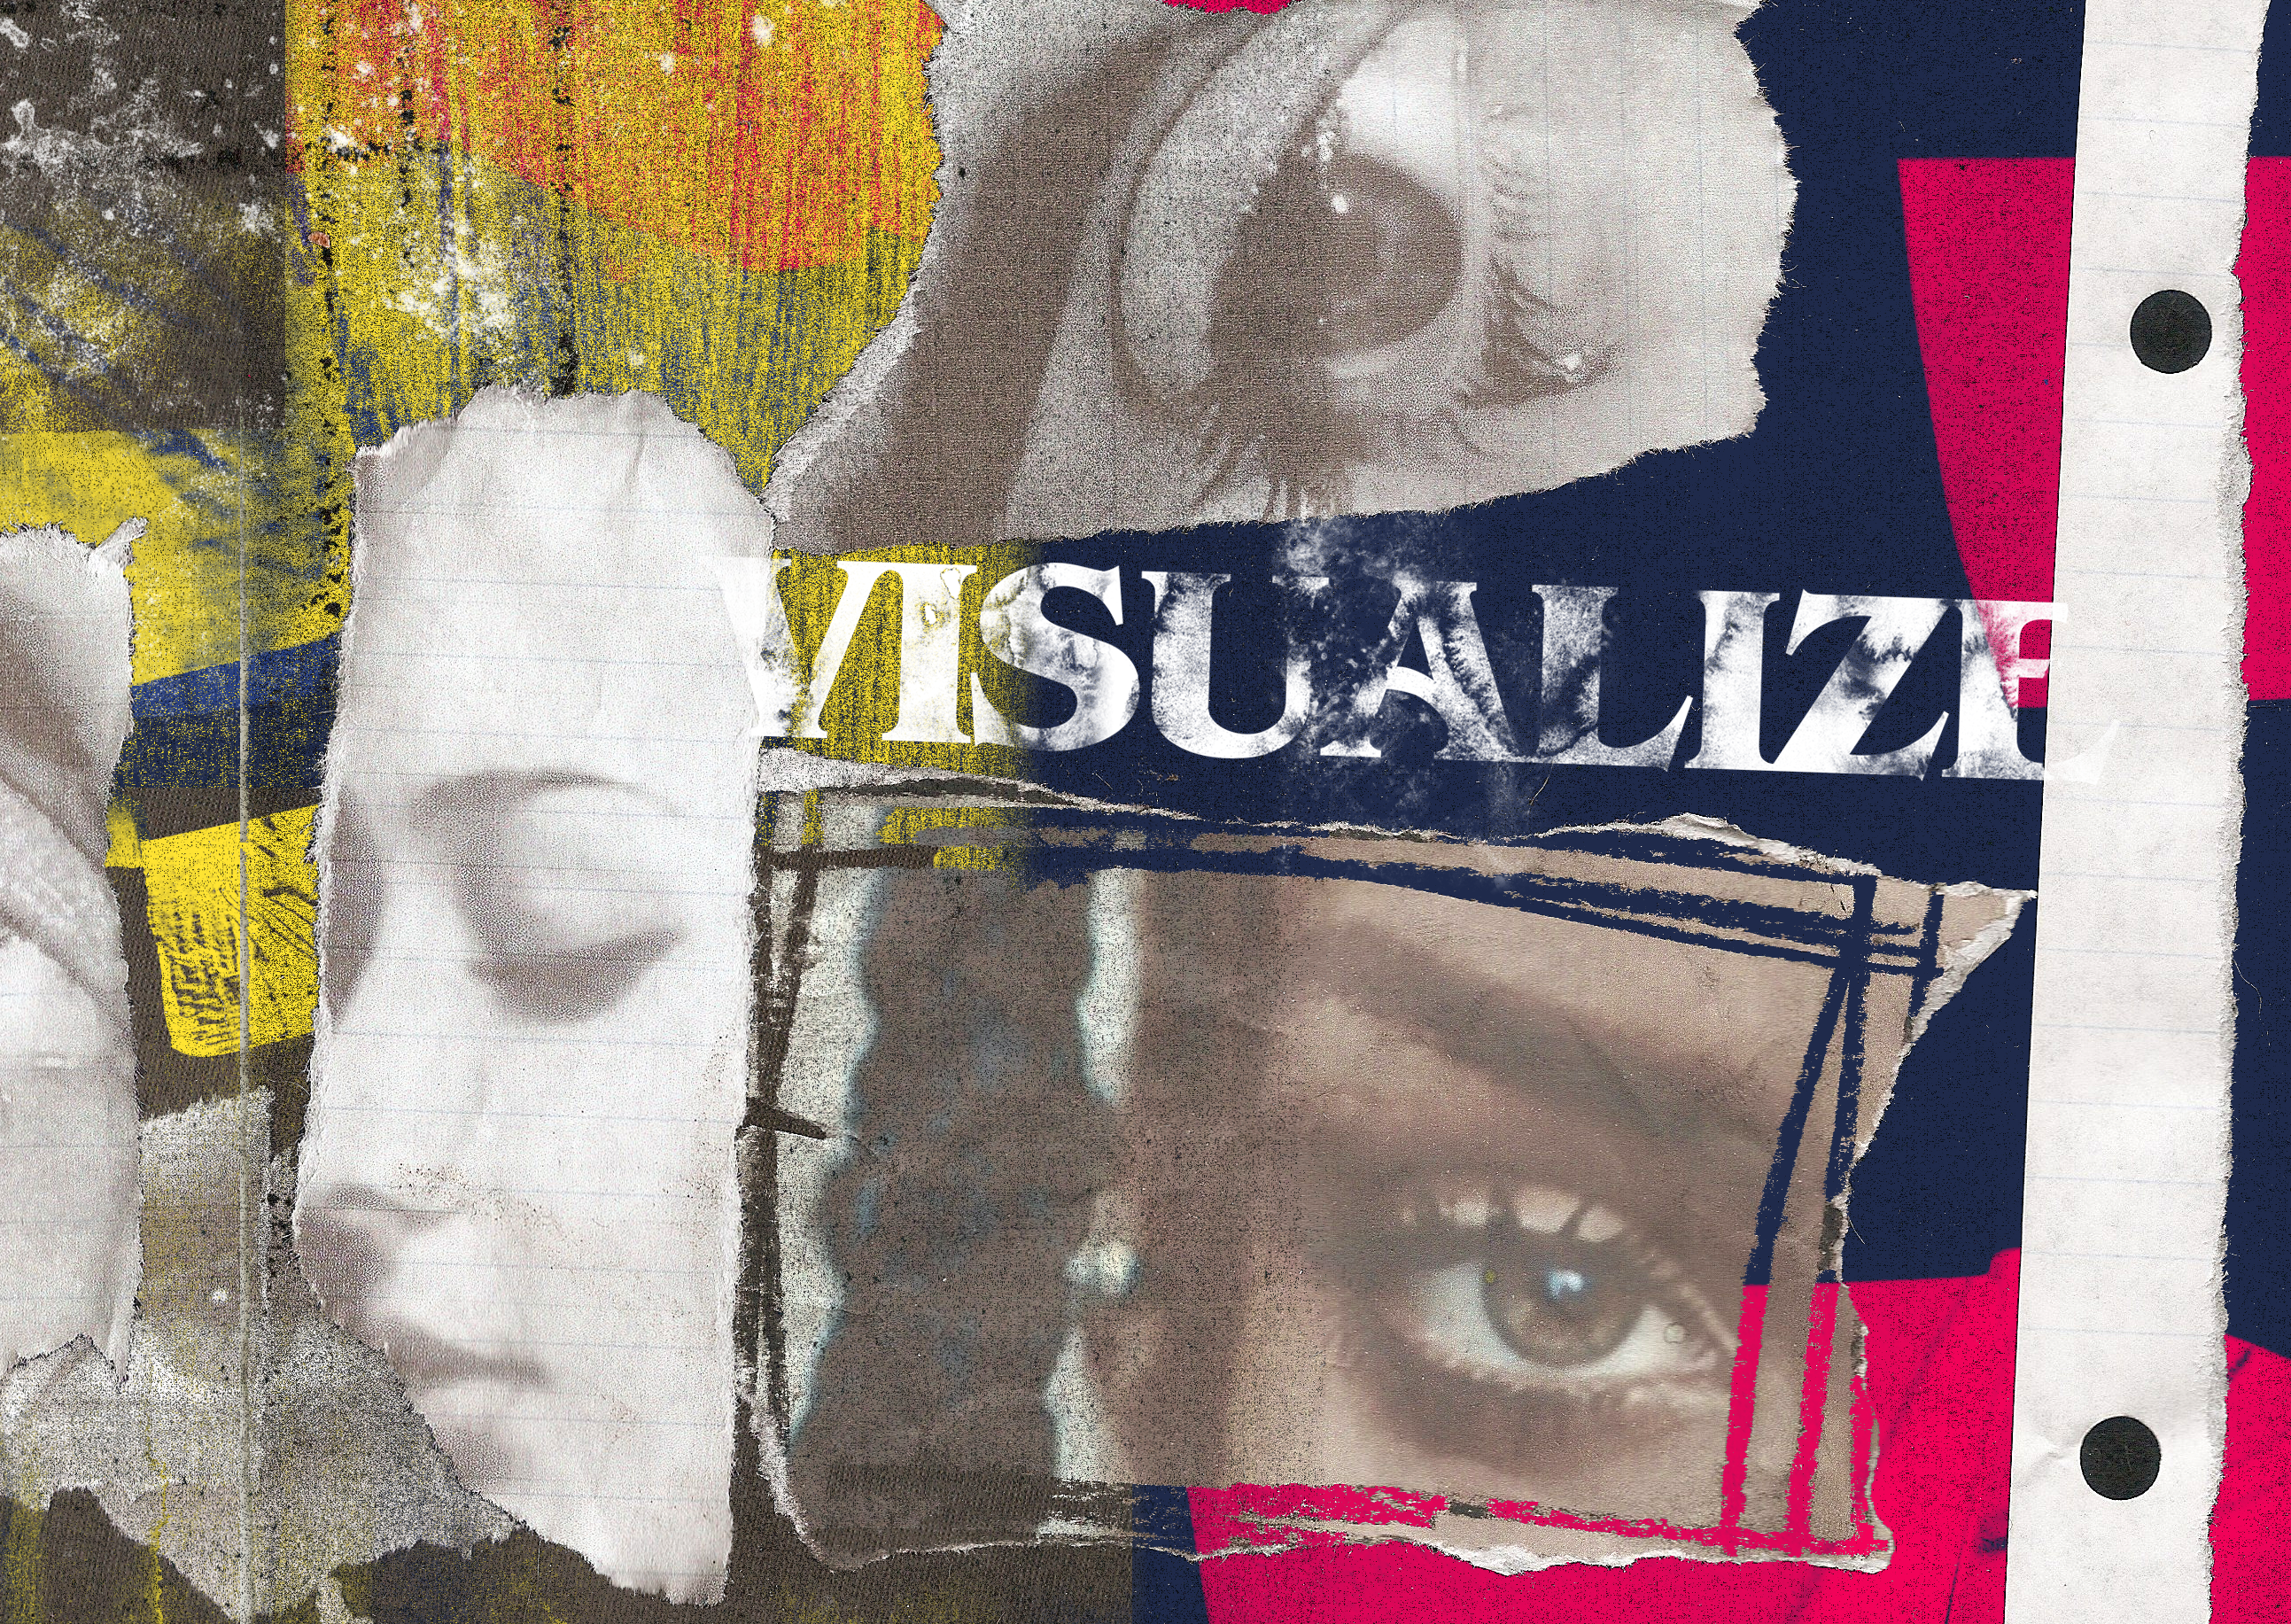 visualize-ethan-solouki-digital-art